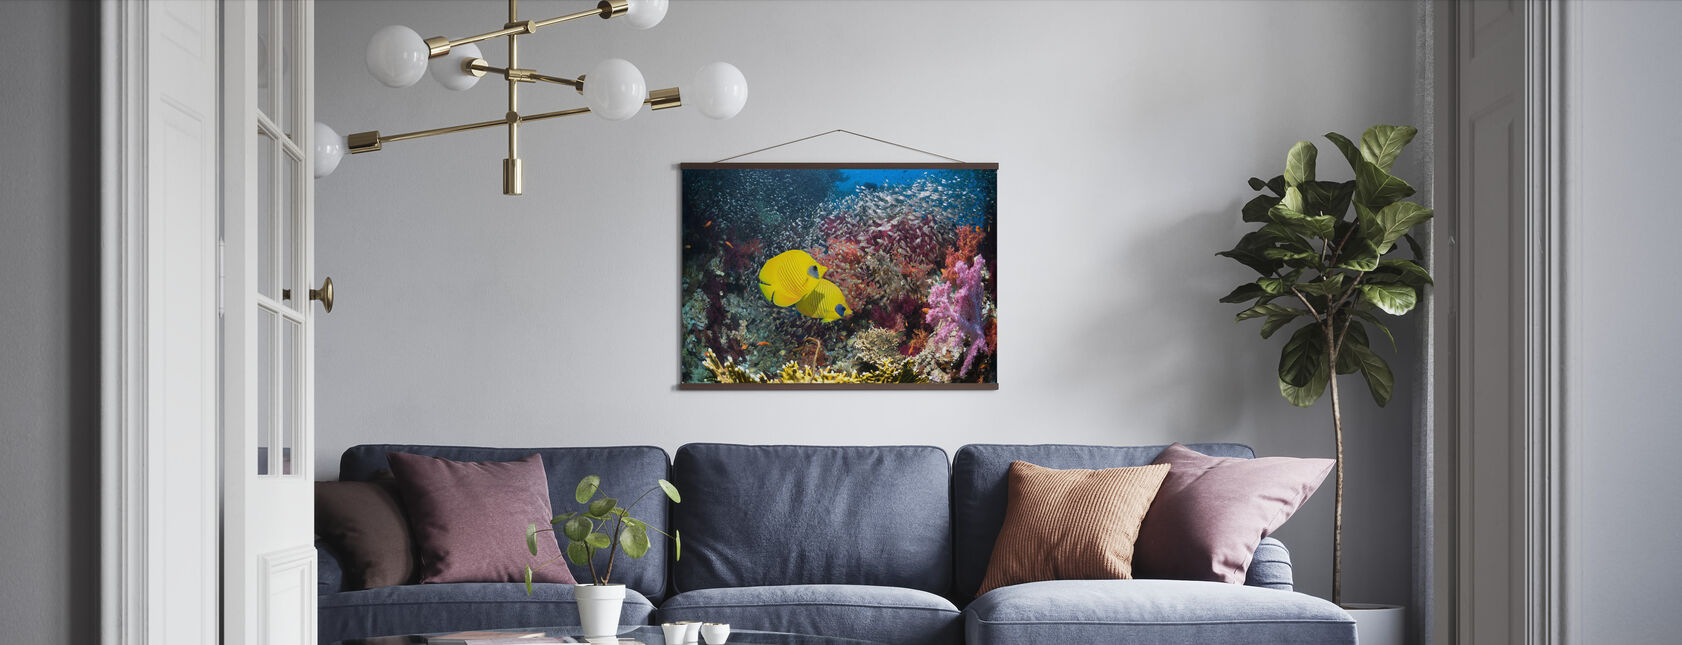 Coral Reef Scenery - Poster - Living Room